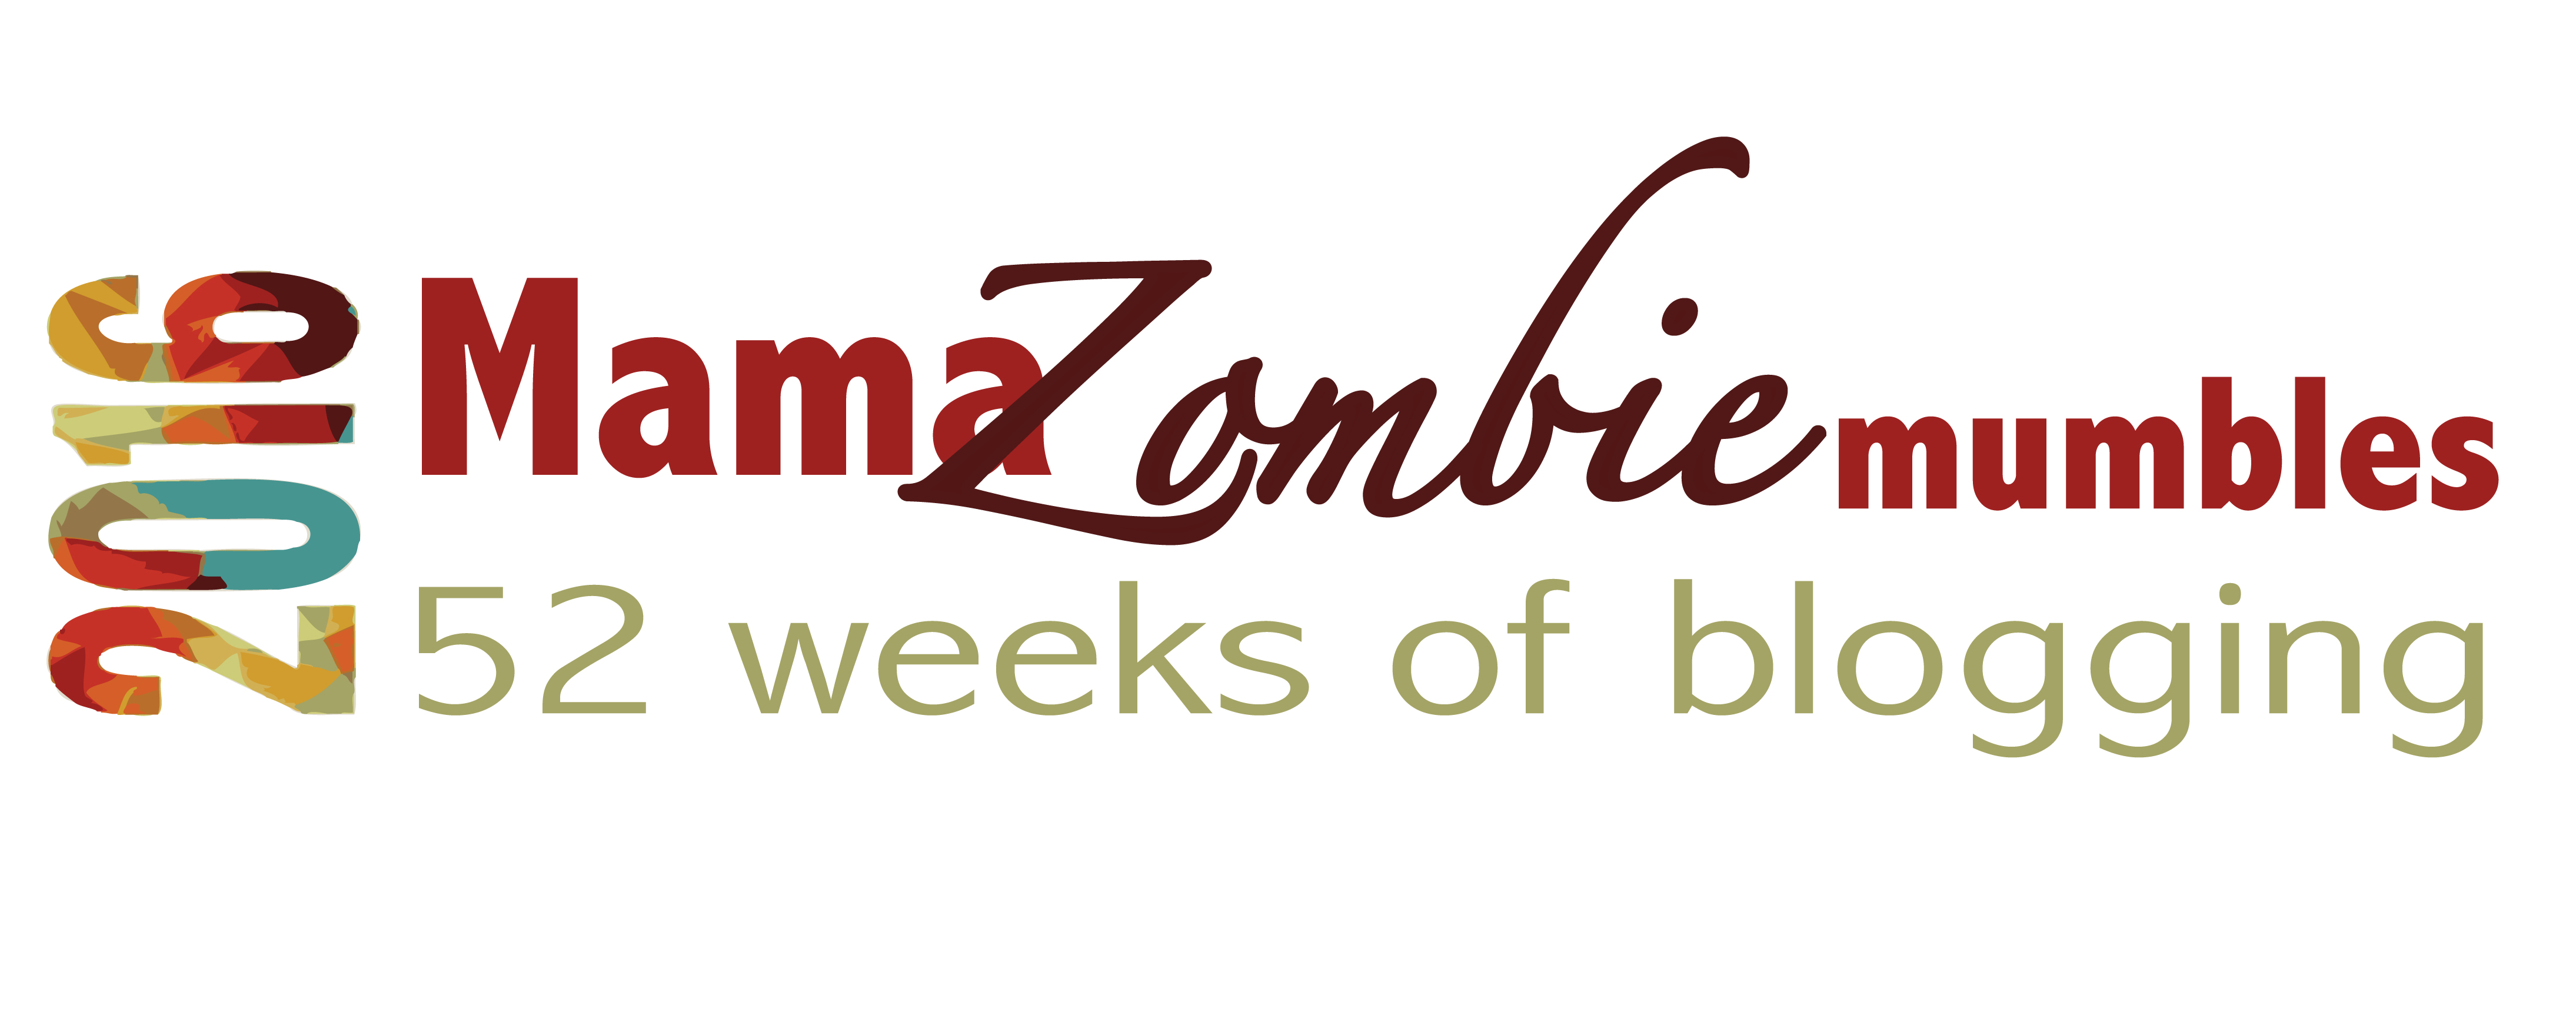 #zombieprompts – What DIY projects are on your spring to-do list?